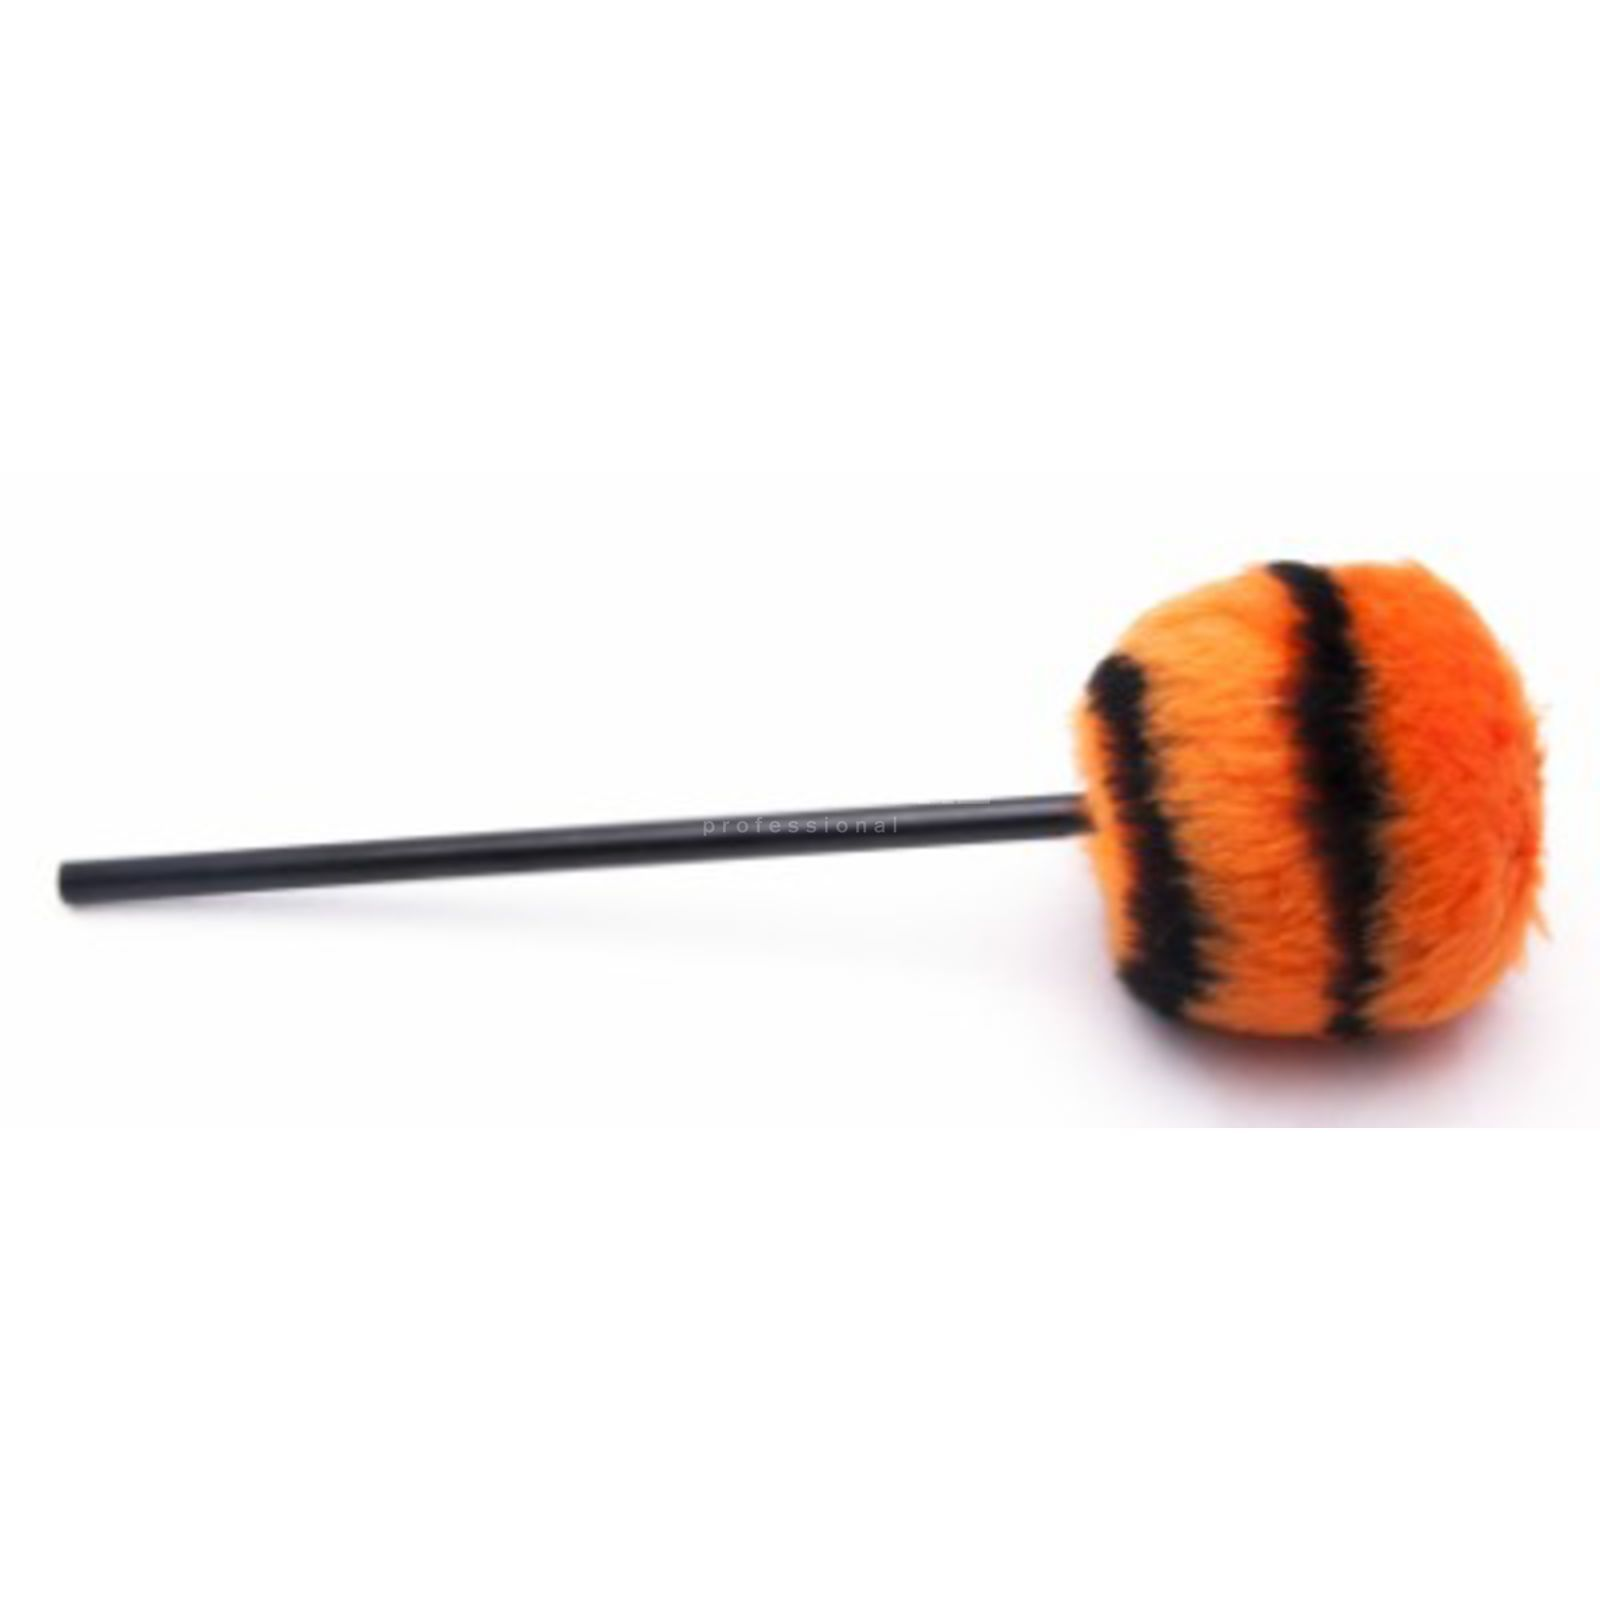 Danmar Drum Zubehör BassDrum Beater 209OT, Orange Tiger Produktbild